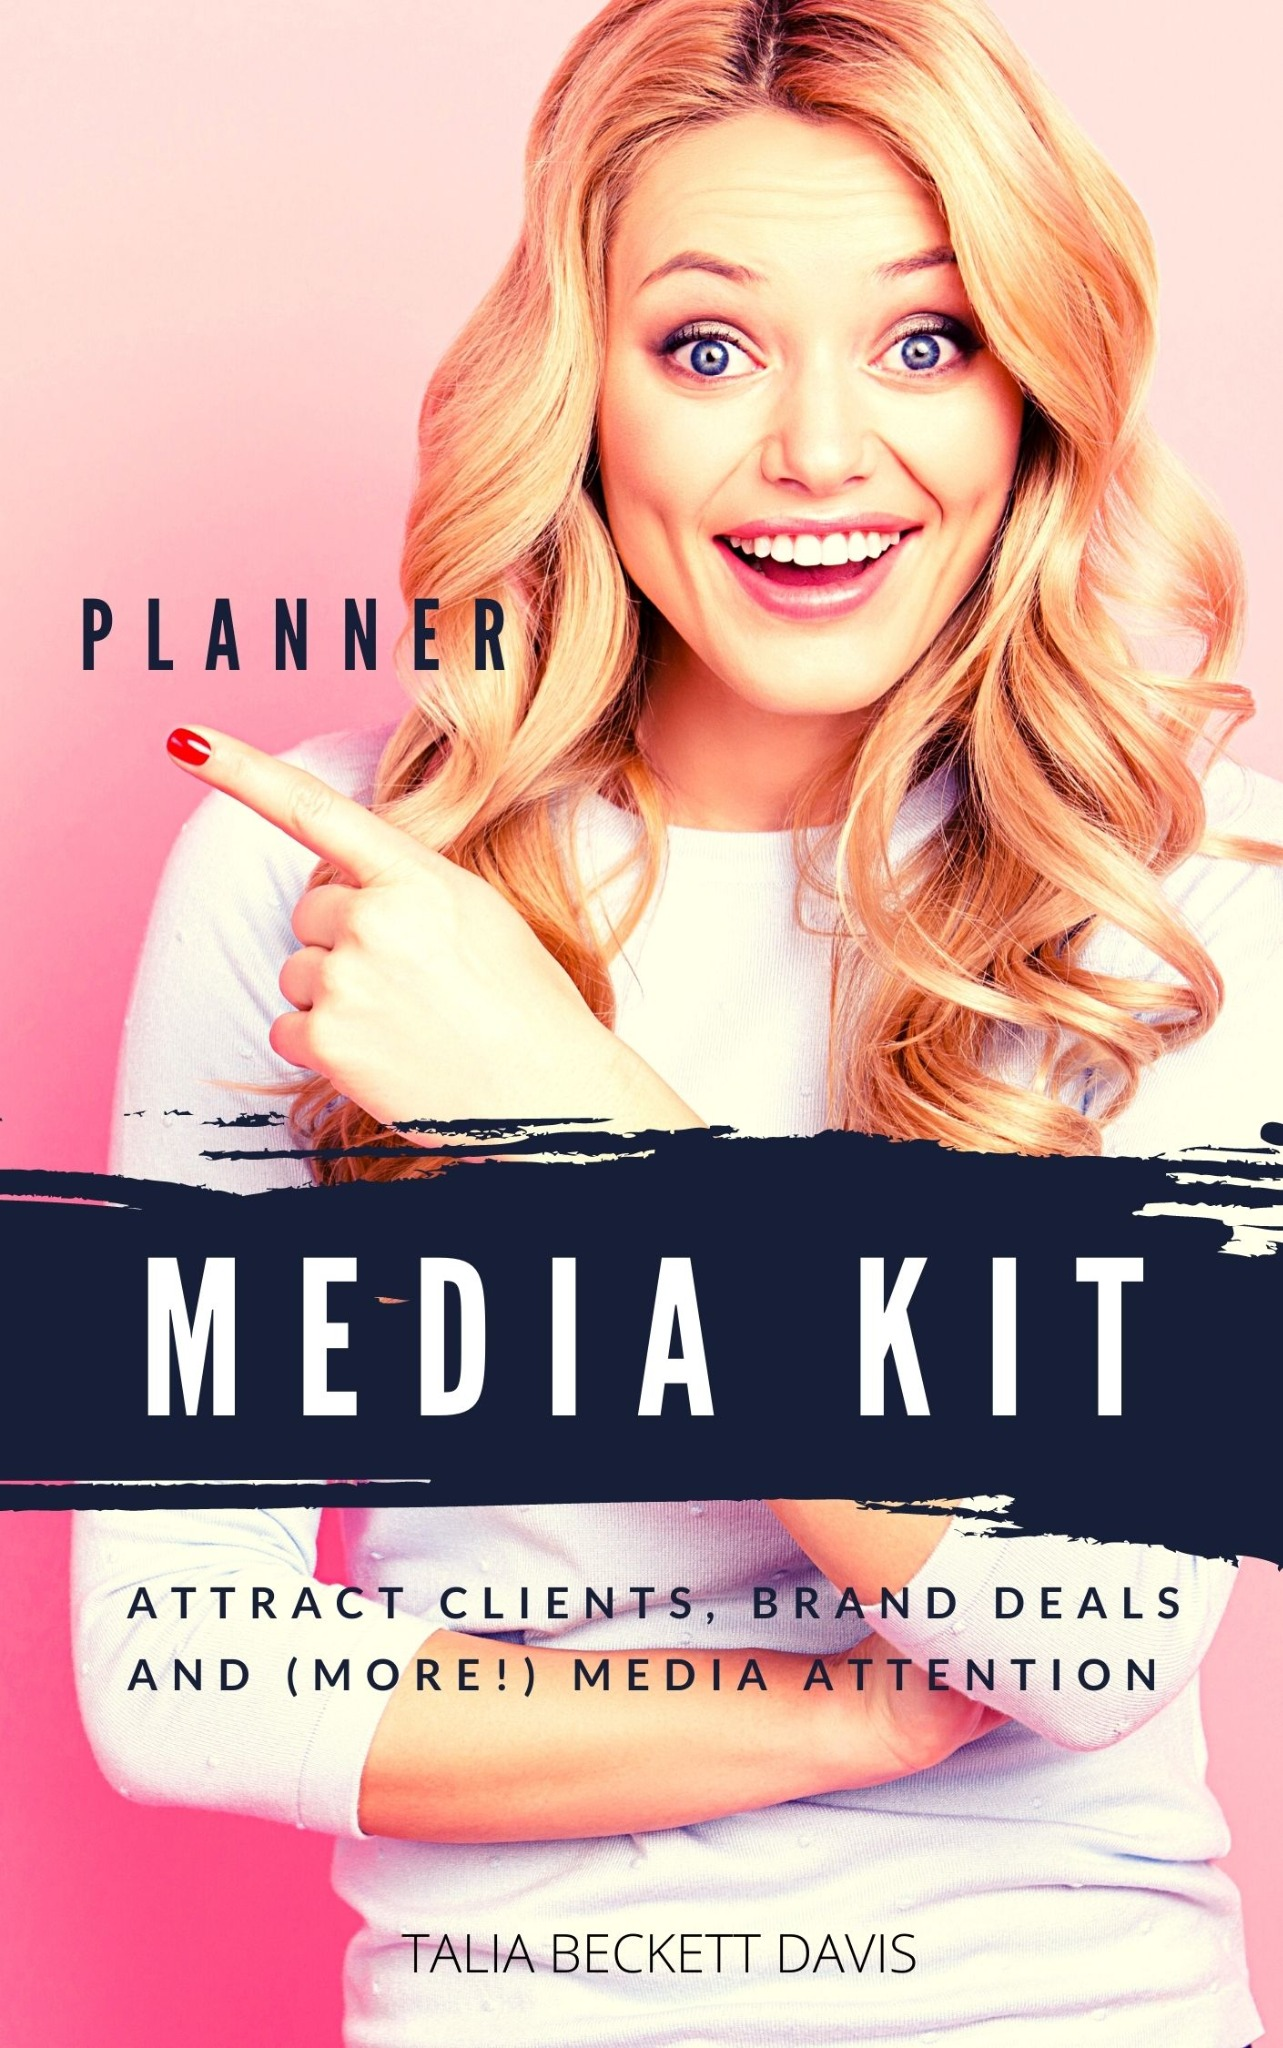 Planner - Media Kit Showcase Your Business - Printable